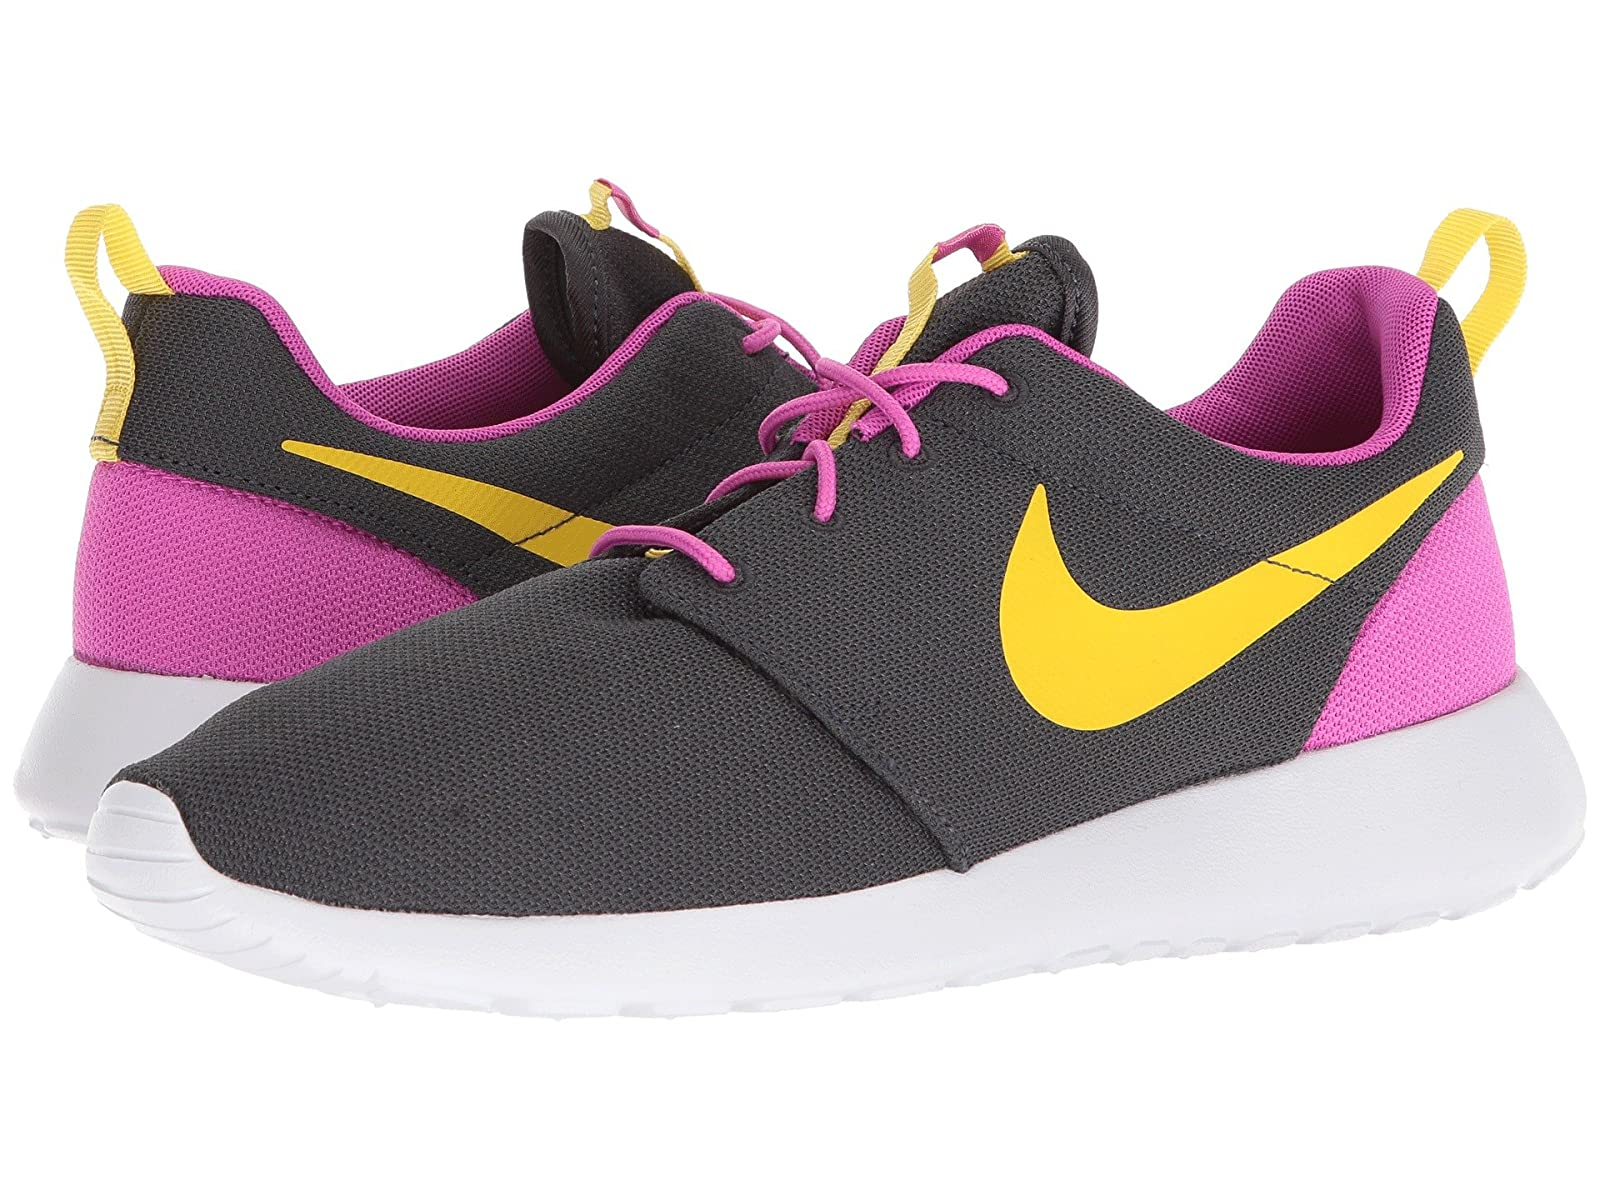 Nike Roshe OneCheap and distinctive eye-catching shoes